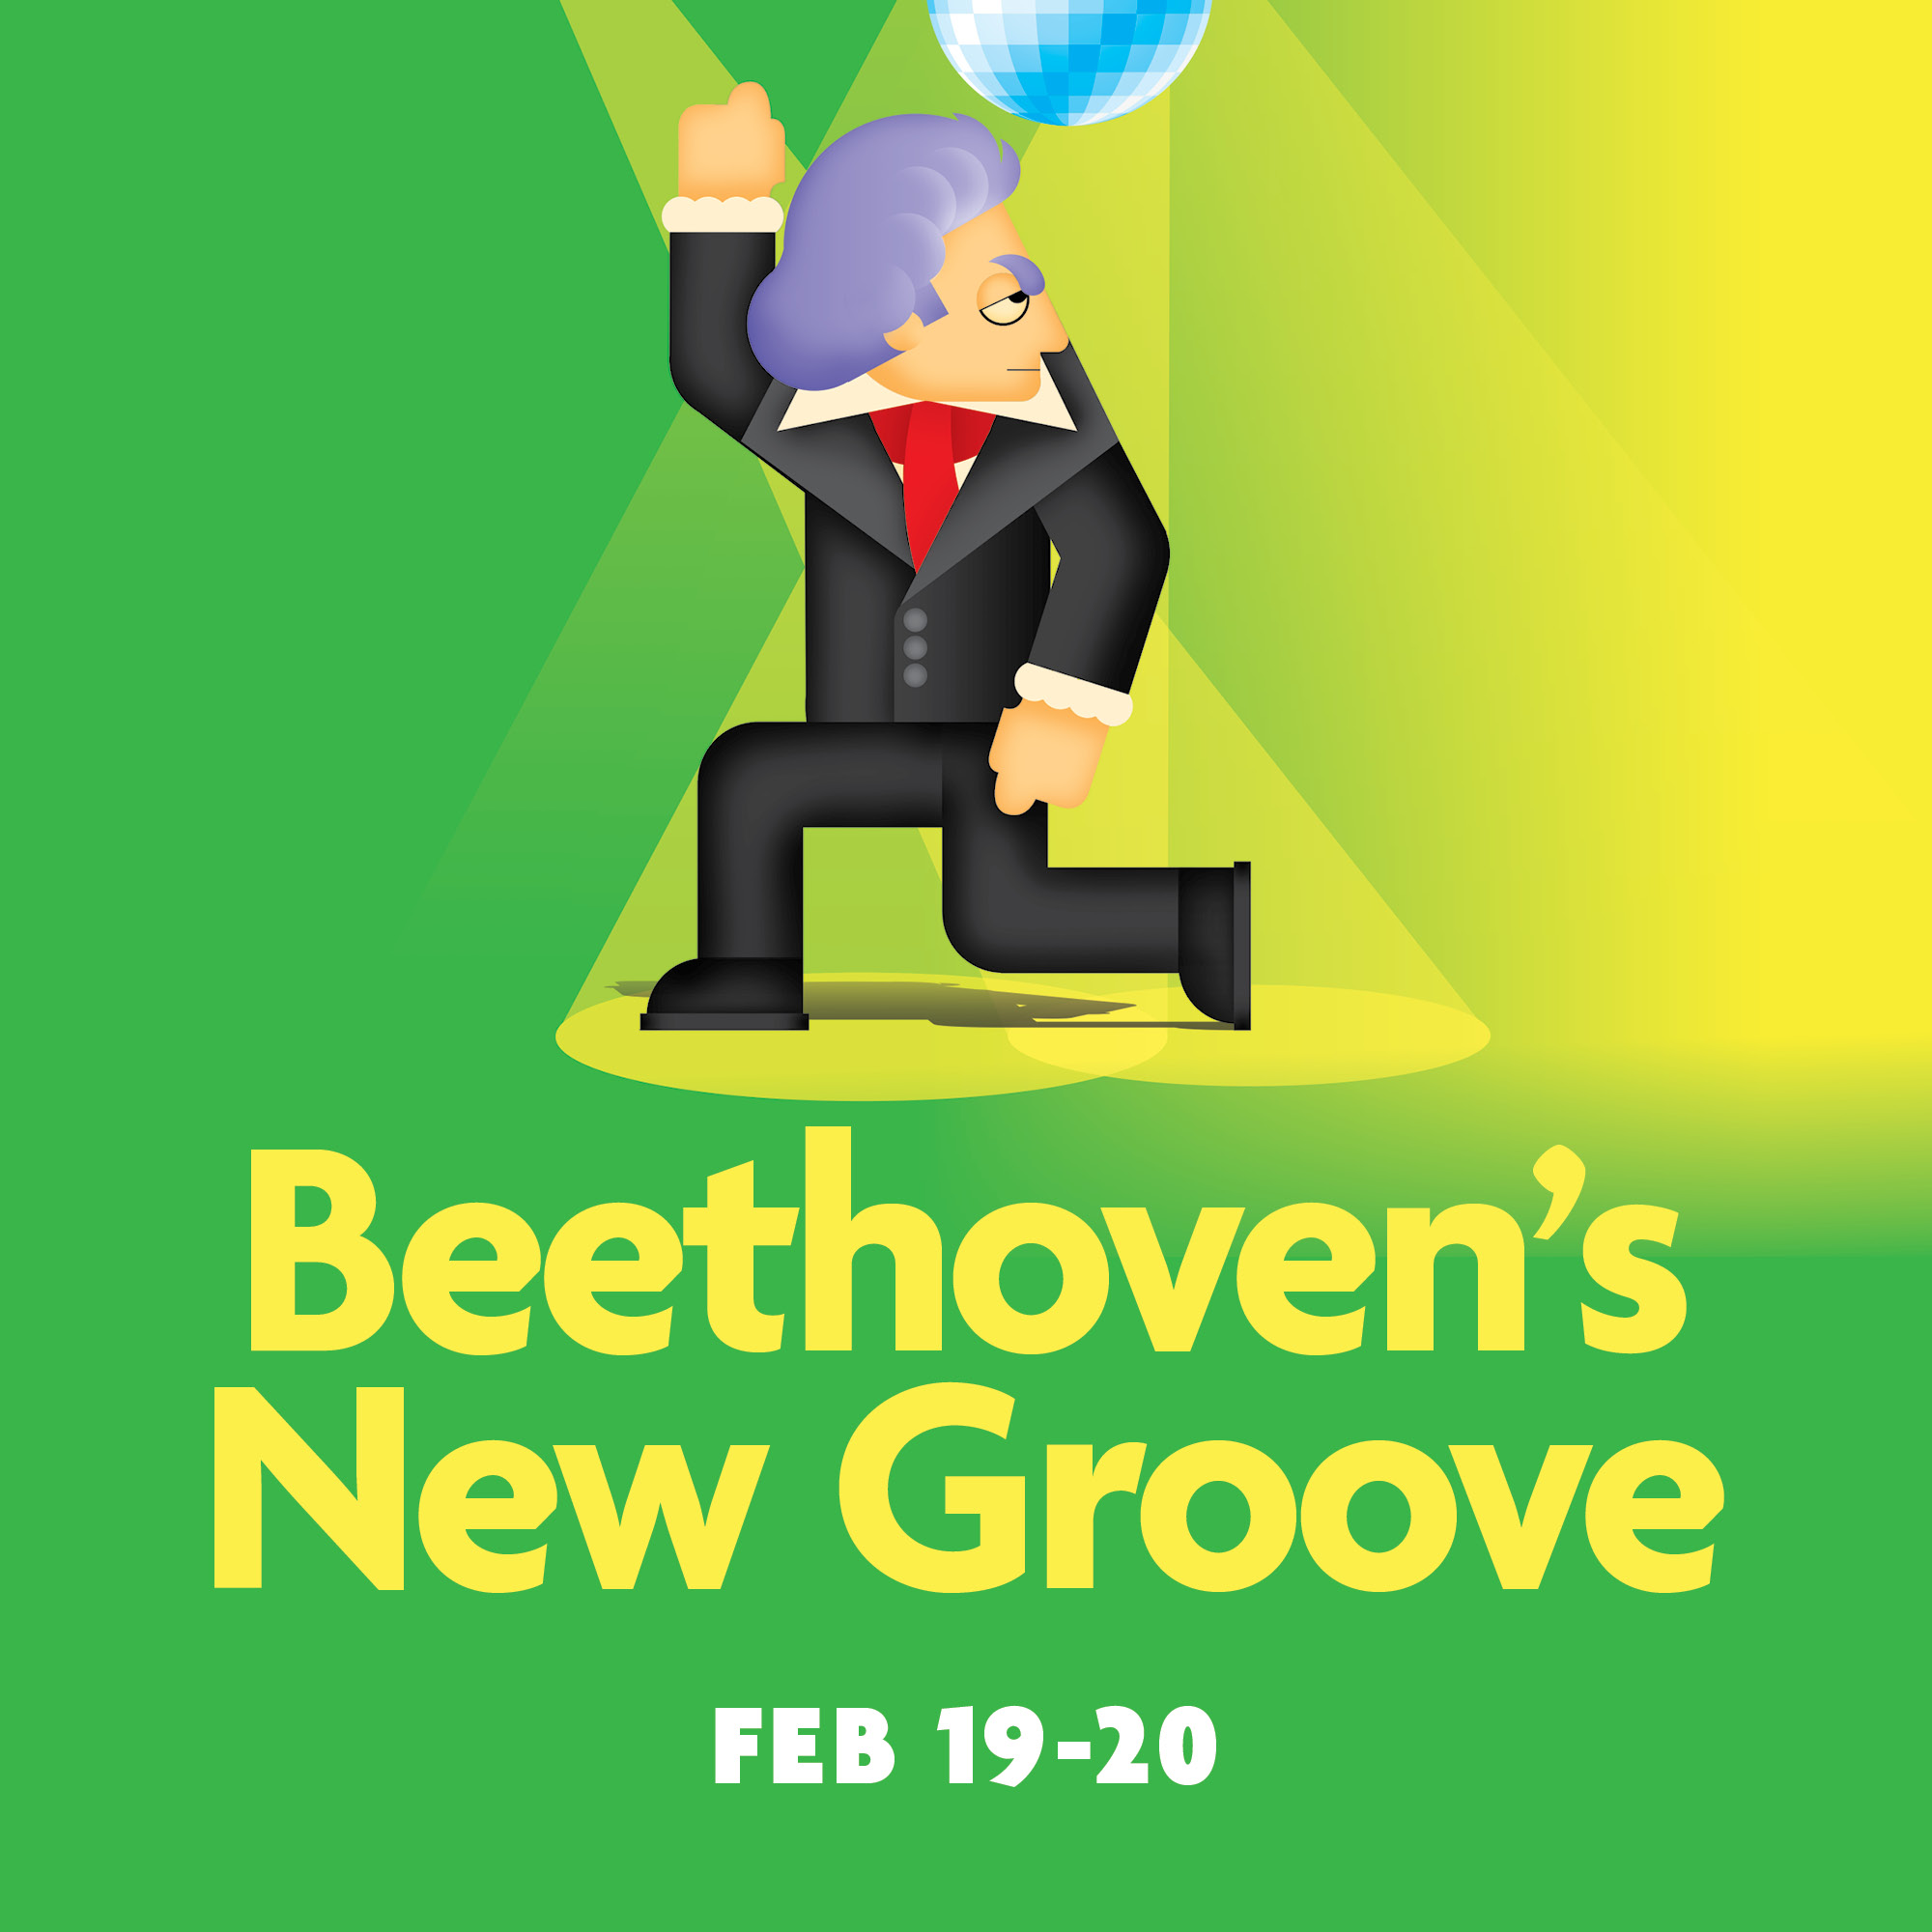 Beethoven's New Groove